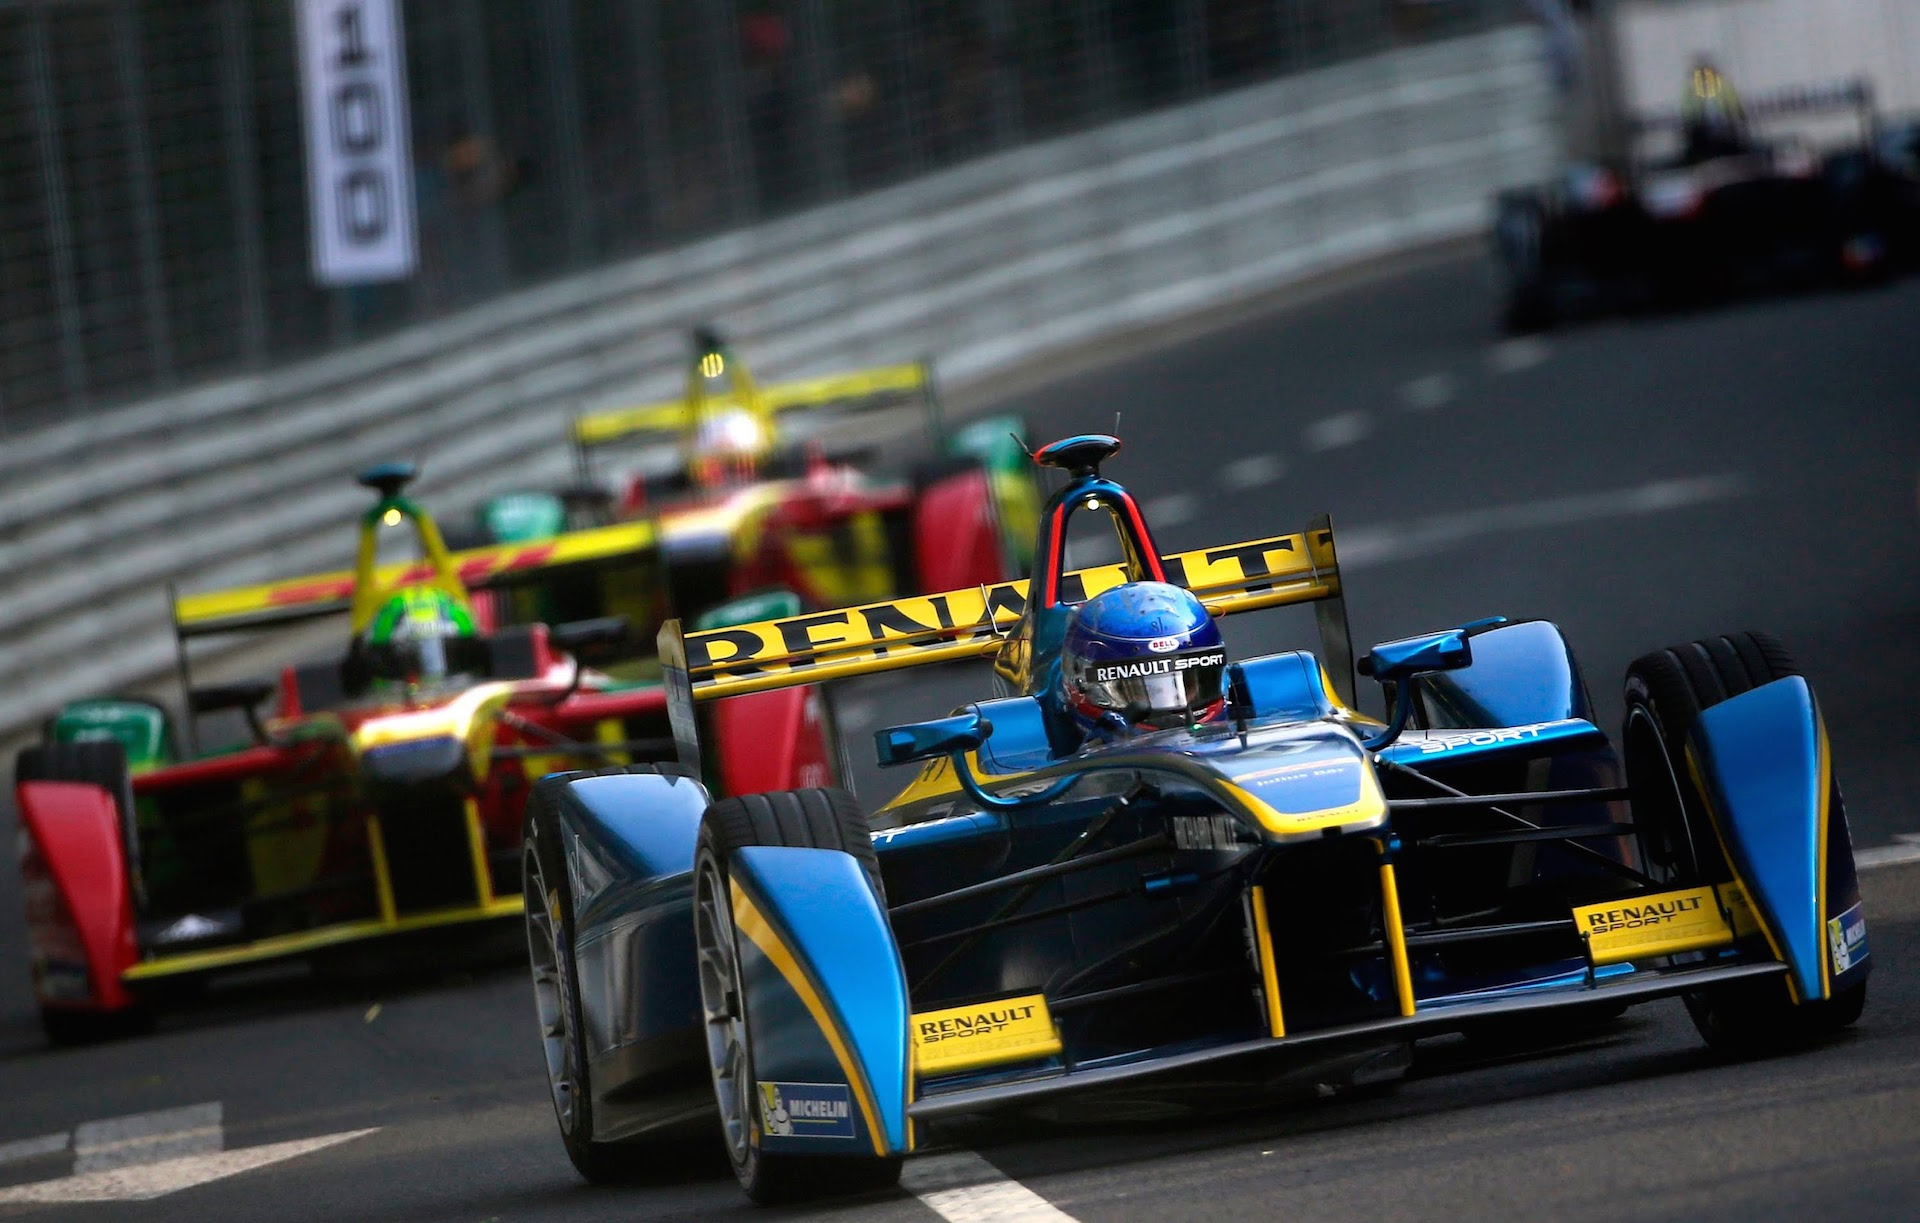 Formula E racing comes to iOS with the Grabyo VIP app